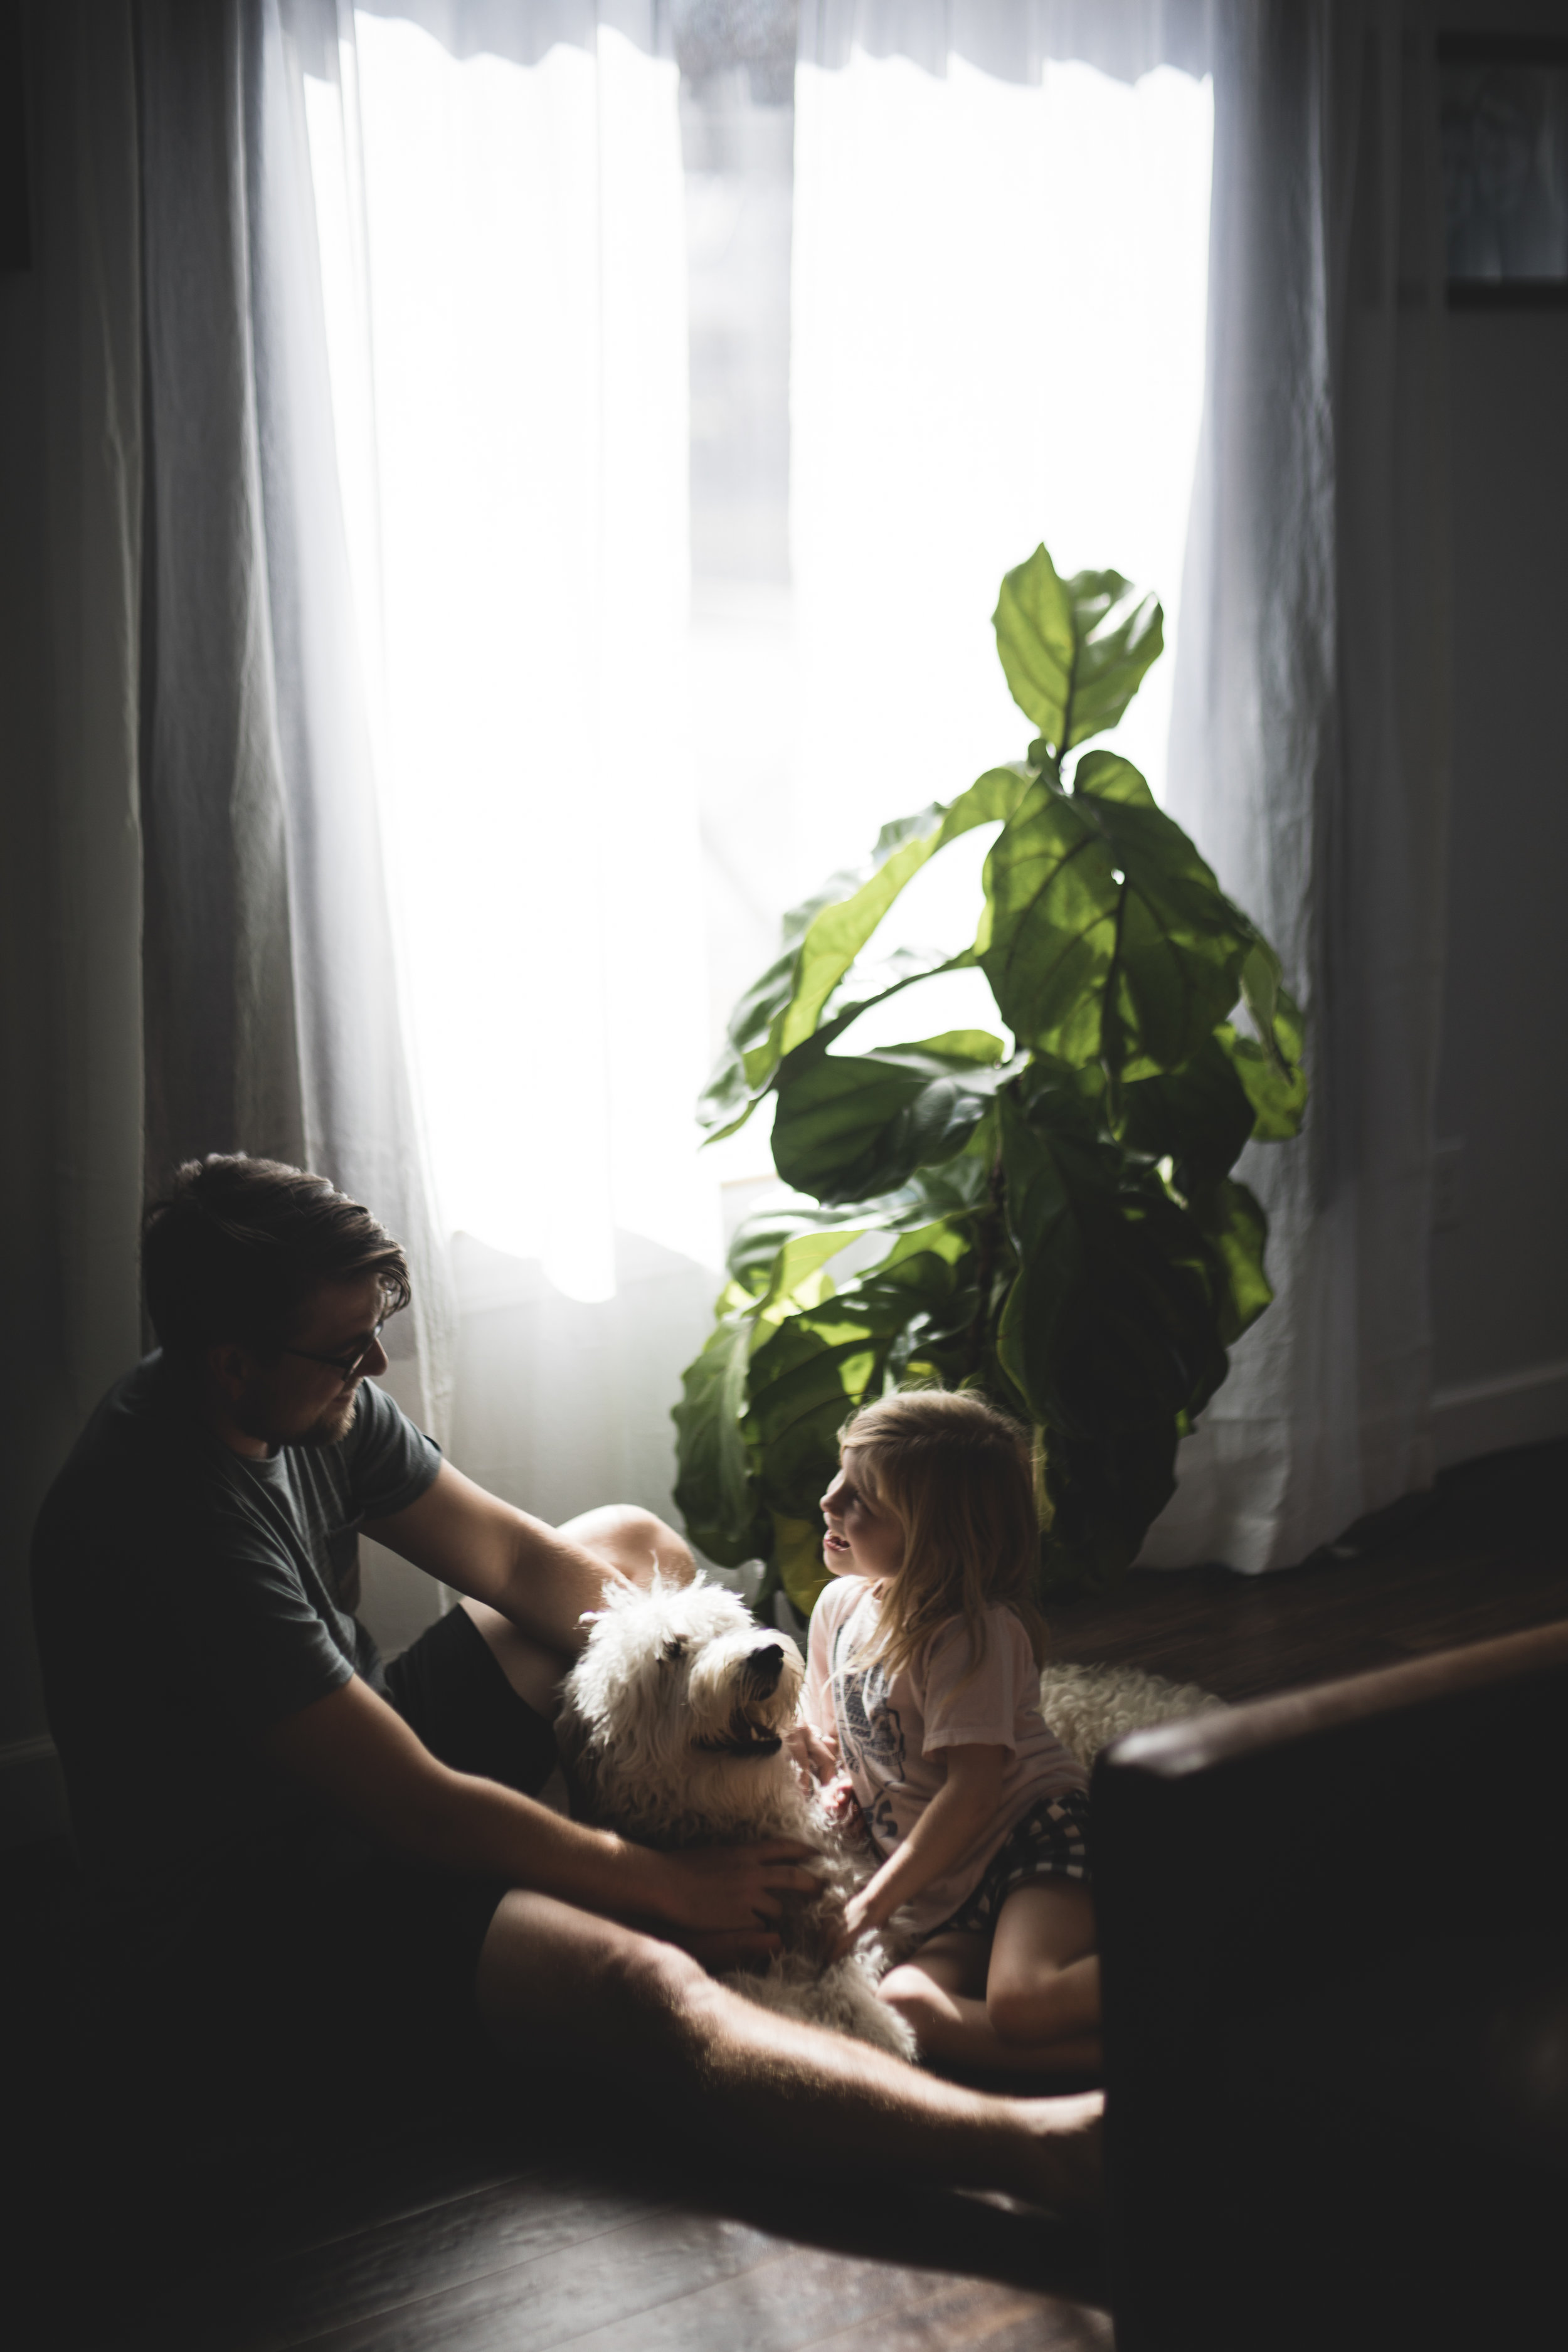 Simple, meaningful home session by Molly Thrasher